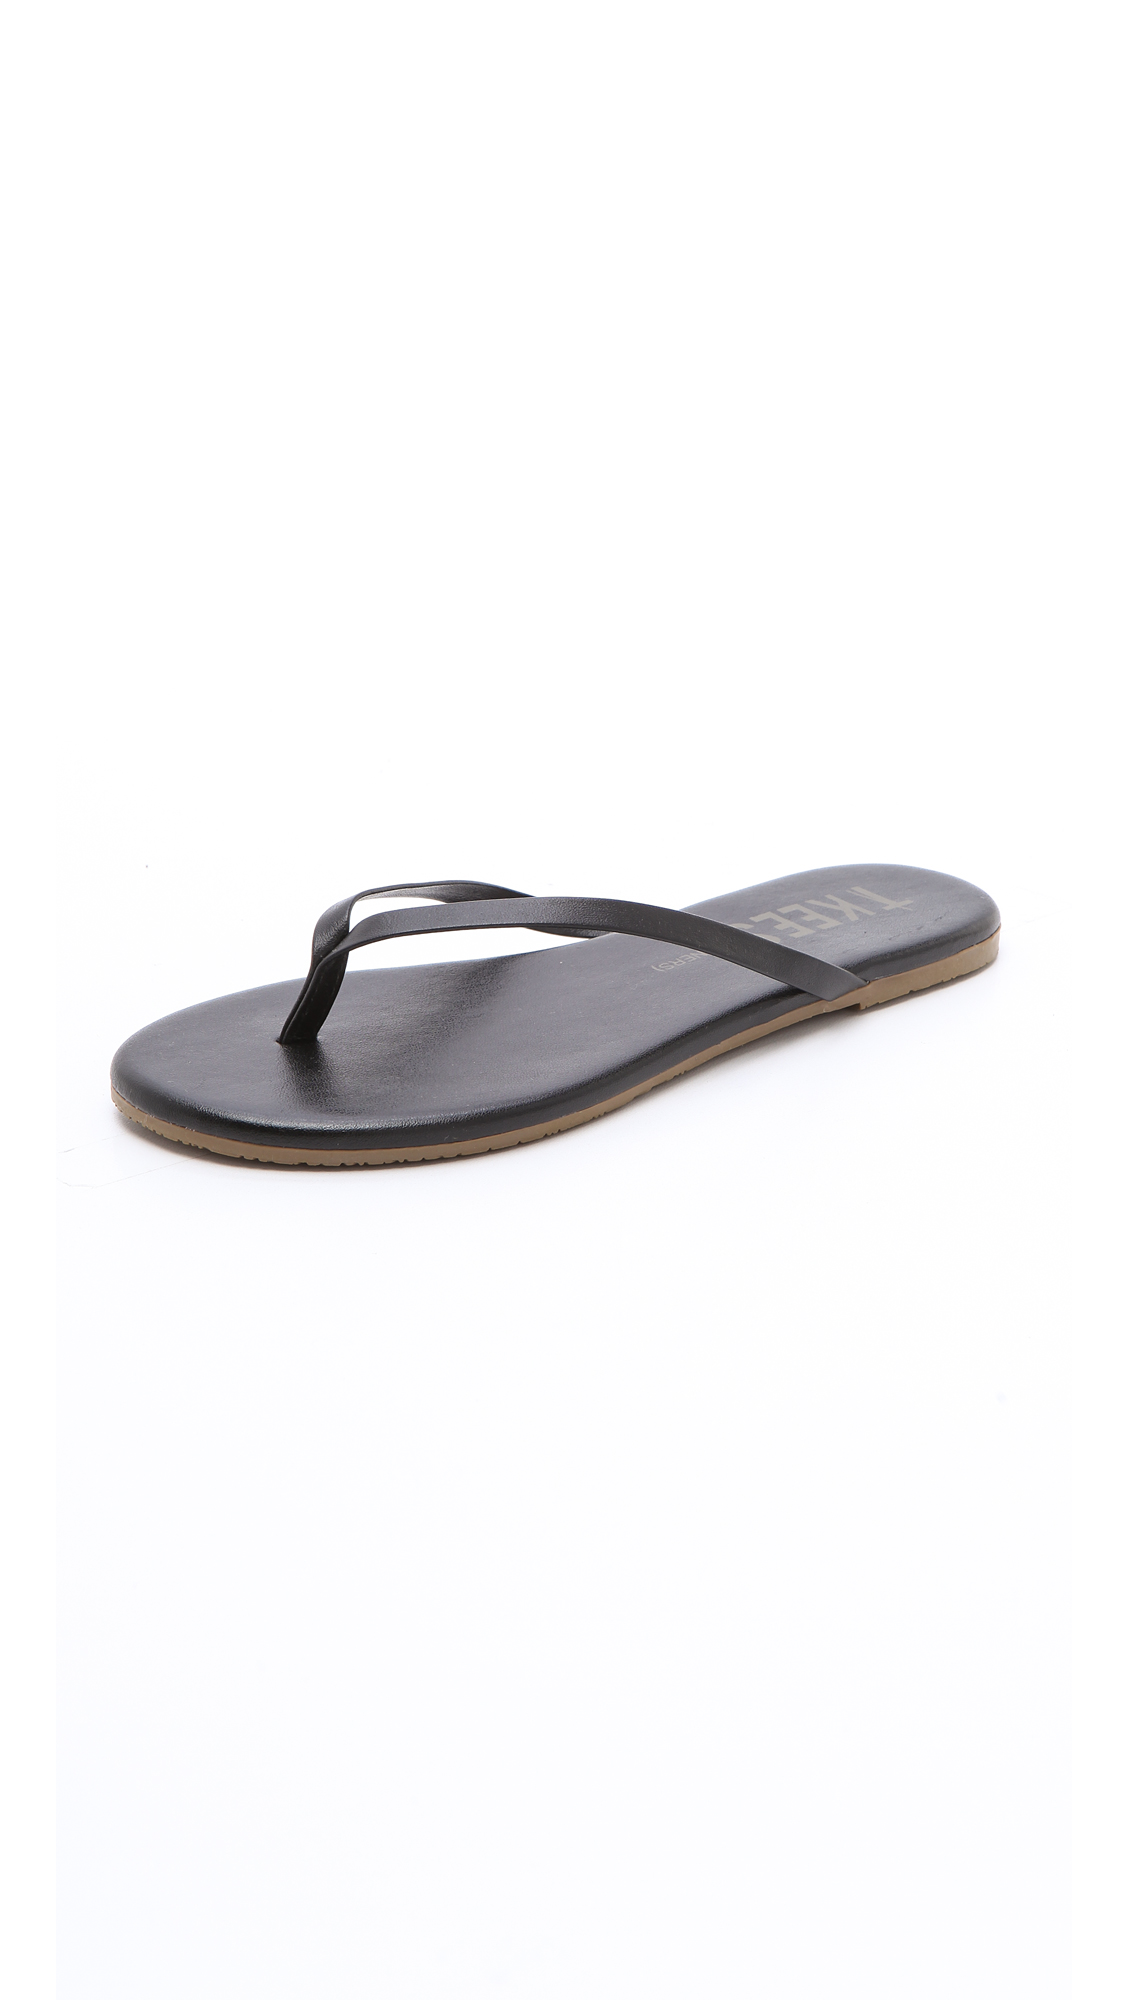 tkees female tkees liners flip flop sable